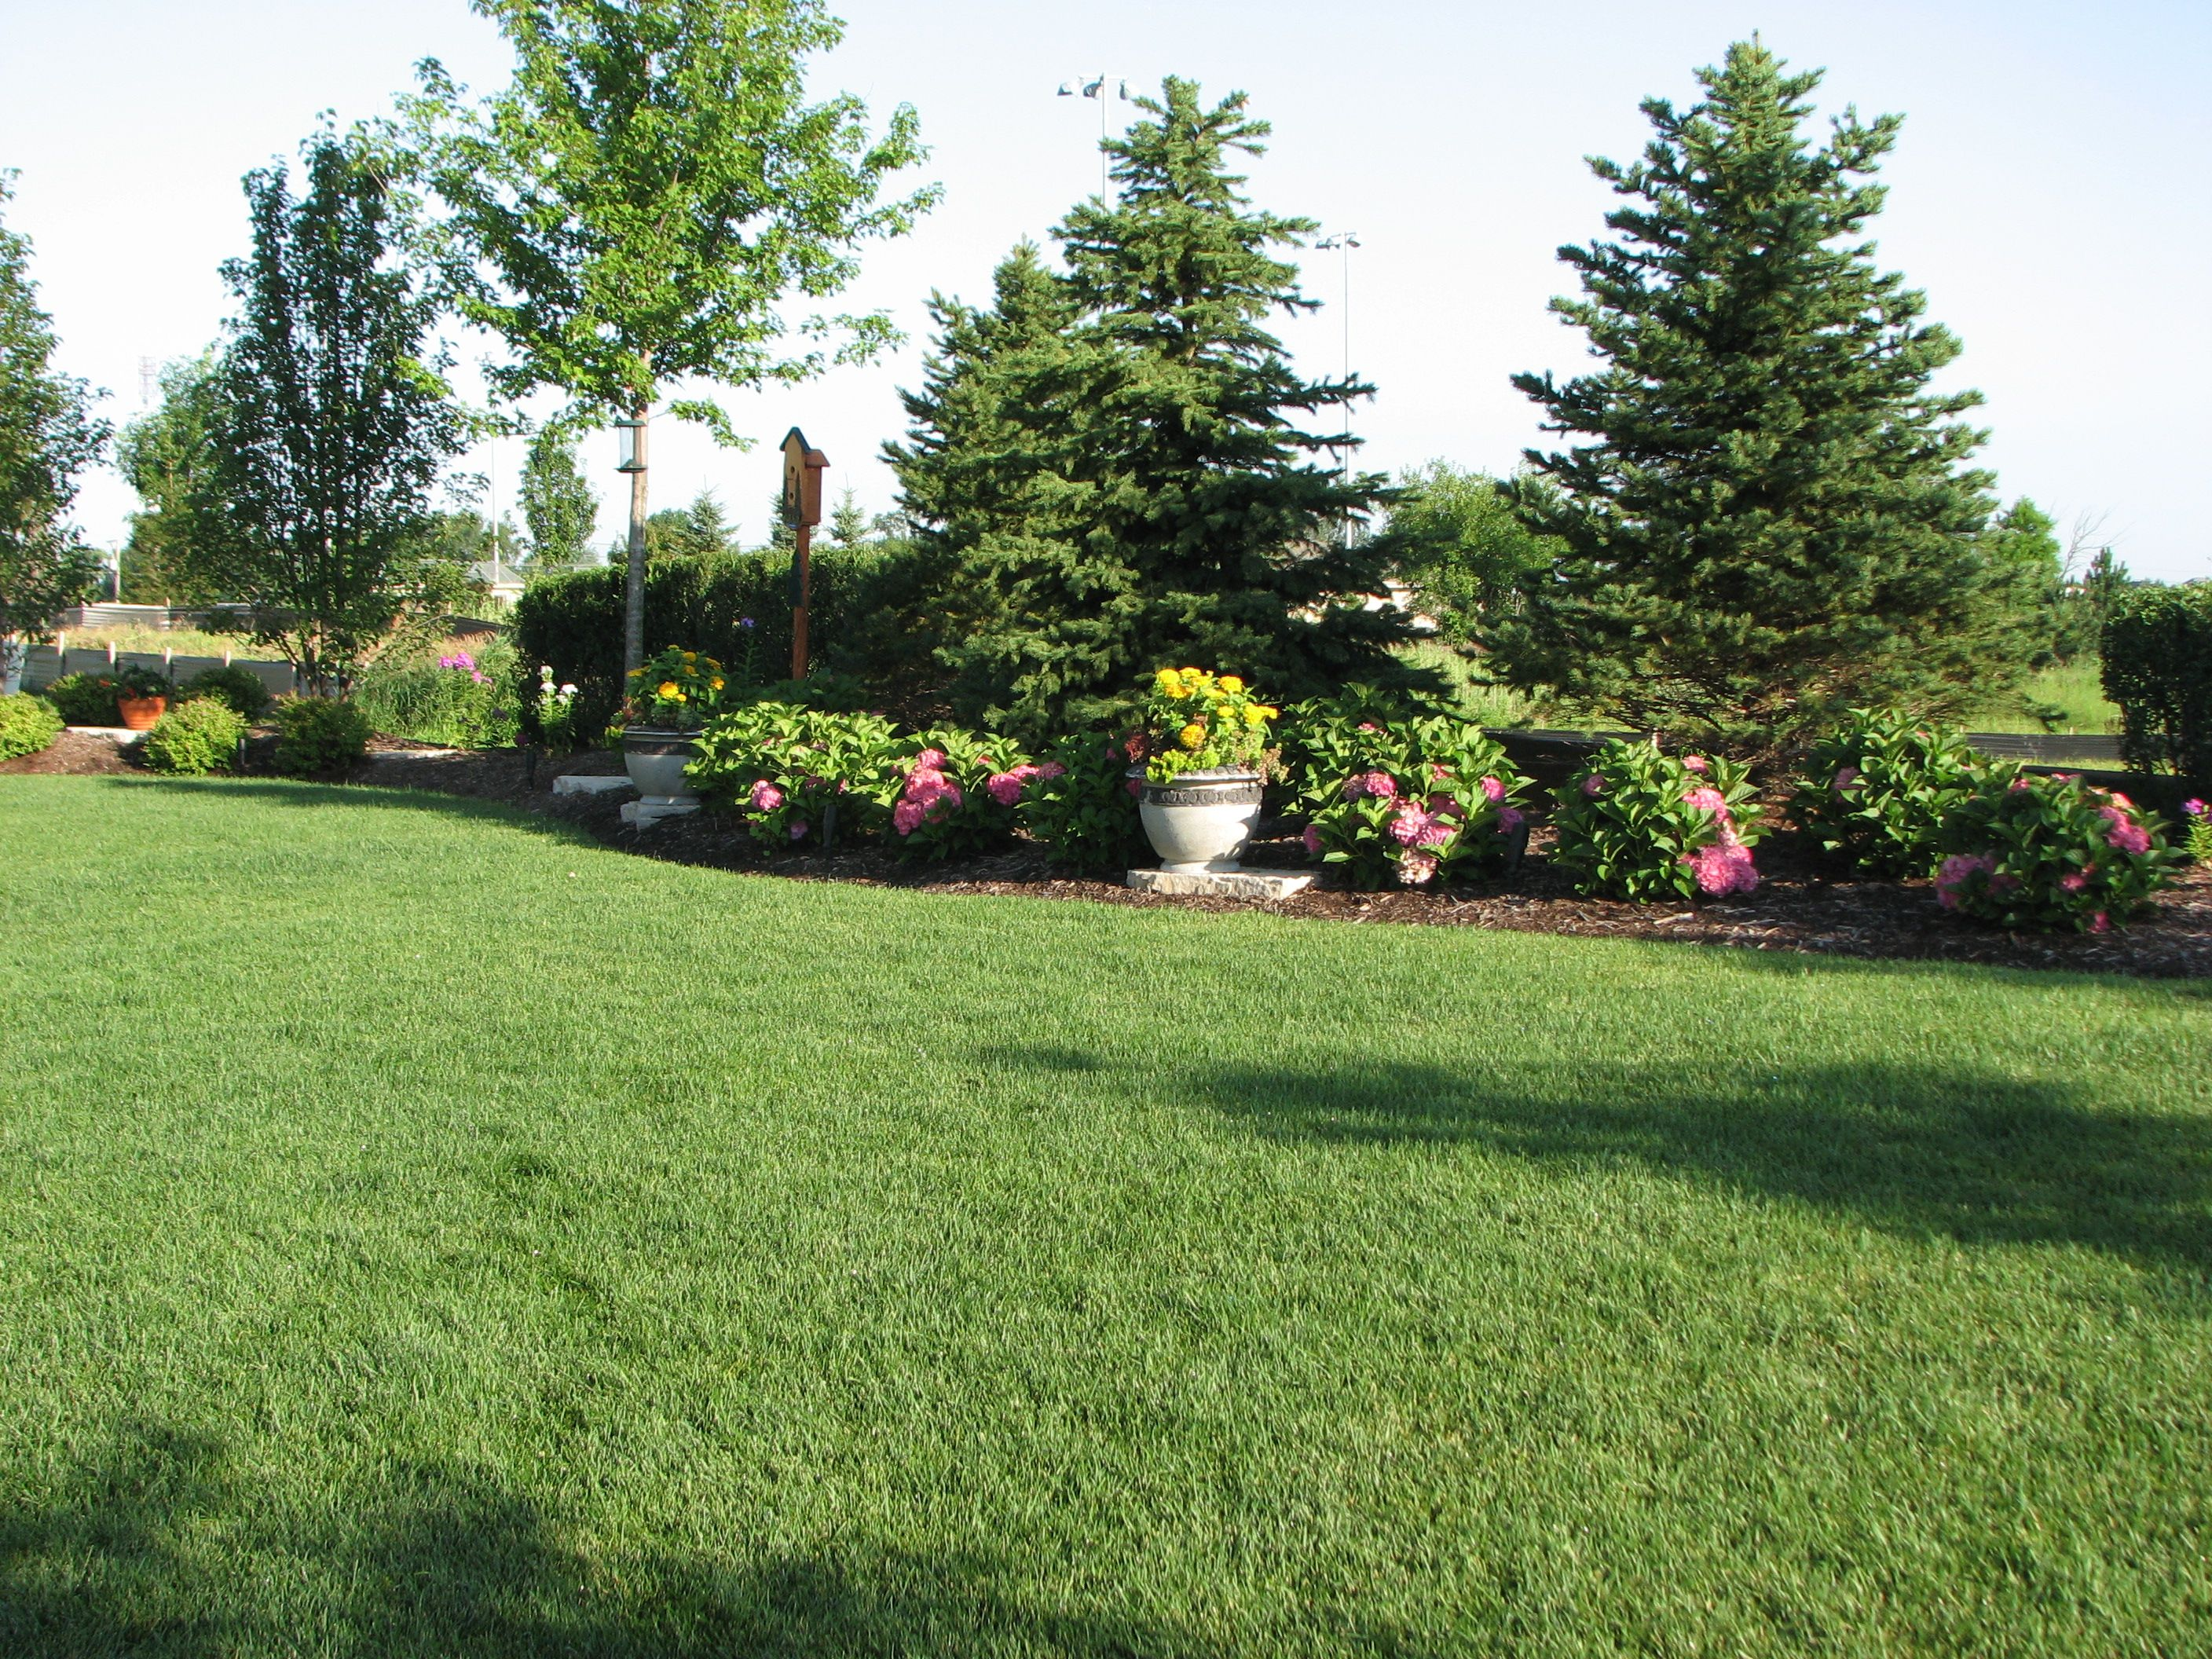 Backyard landscaping for privacy existing home for Home and garden landscaping